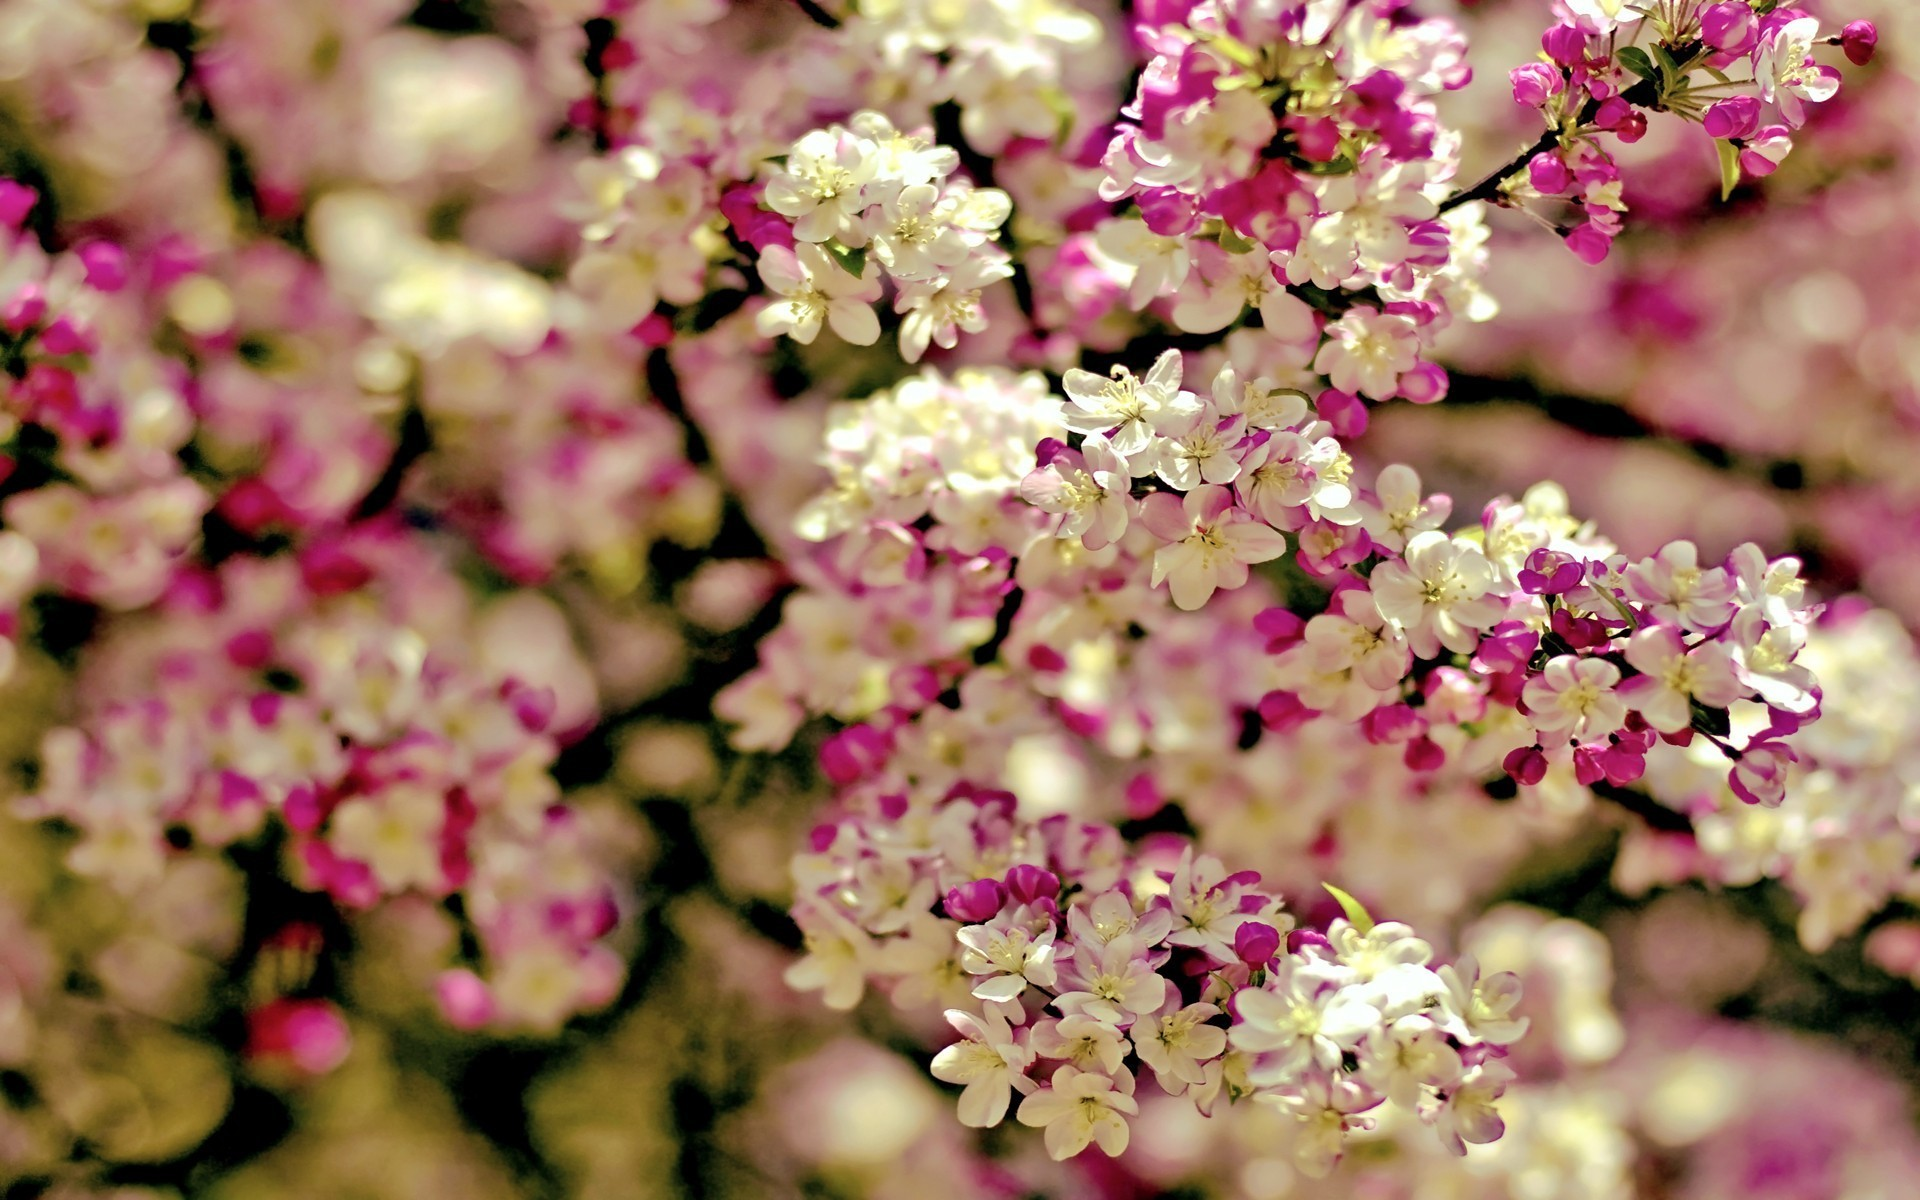 Wallpaper Of Spring 58 Images